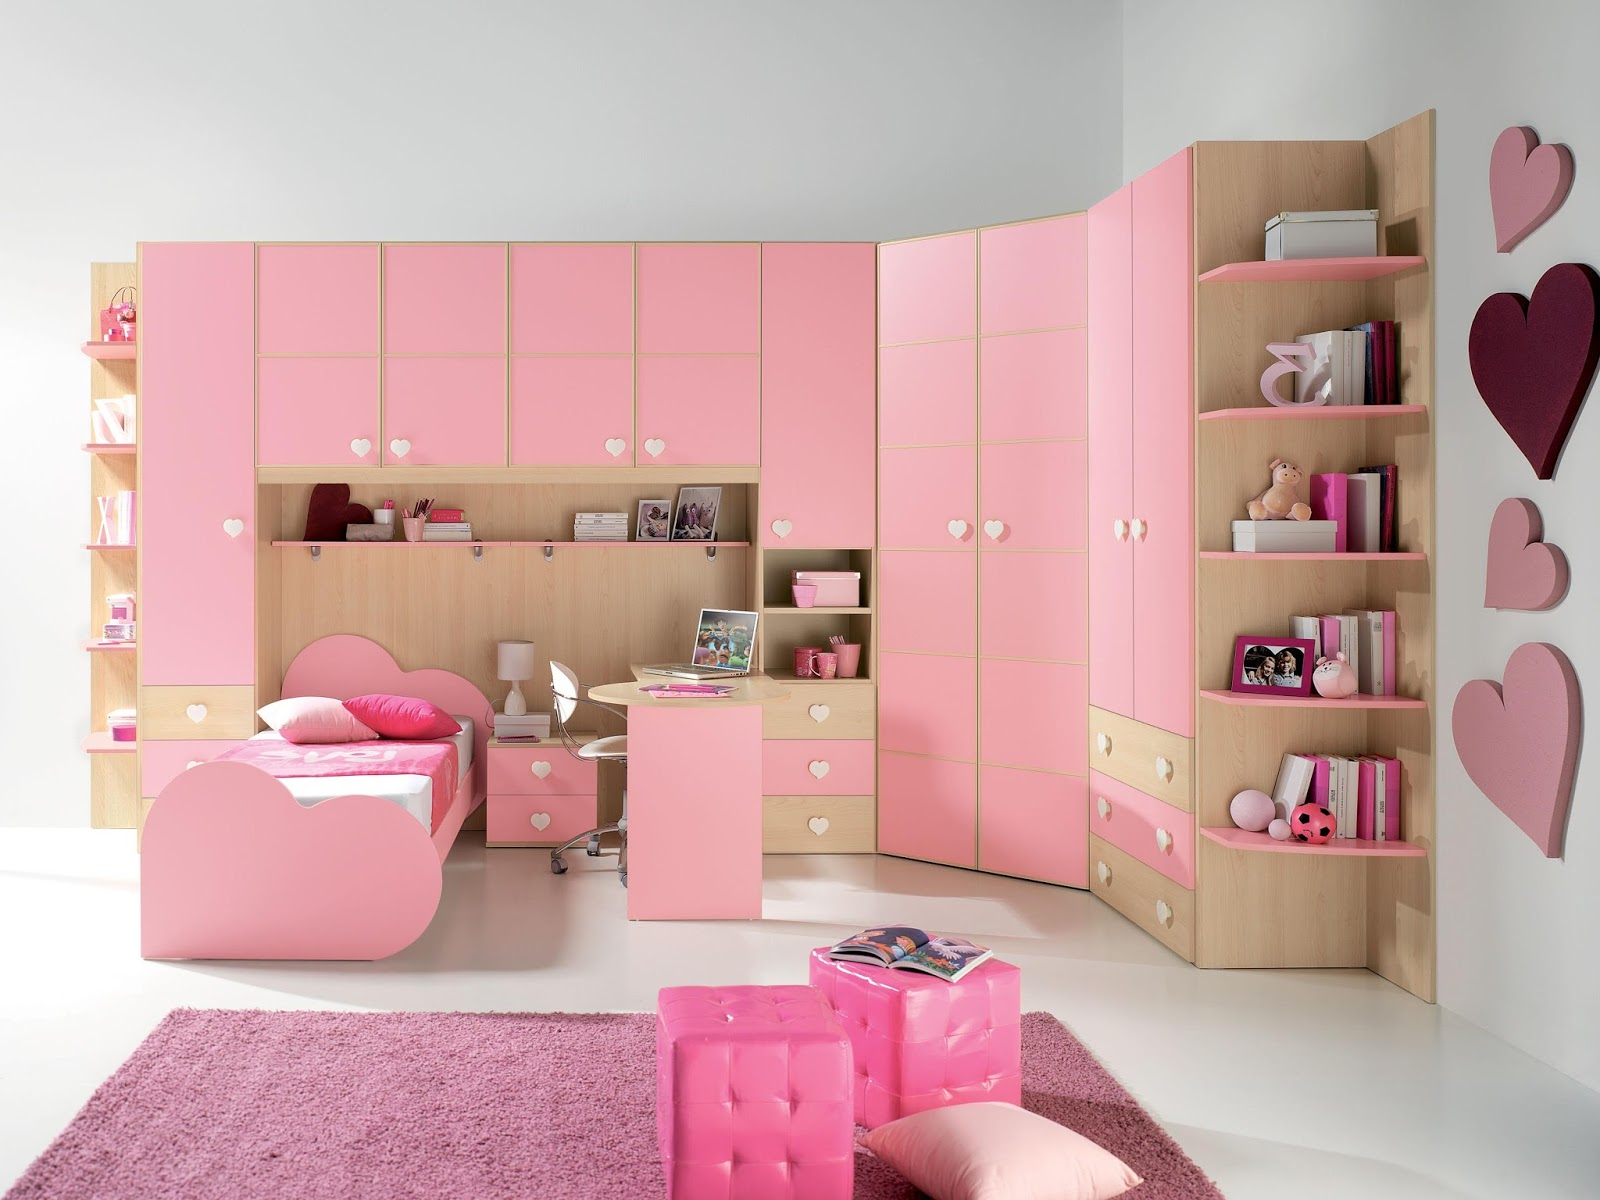 Charming pink theme living room bedroom and kitchen for Pink paint for bedroom ideas